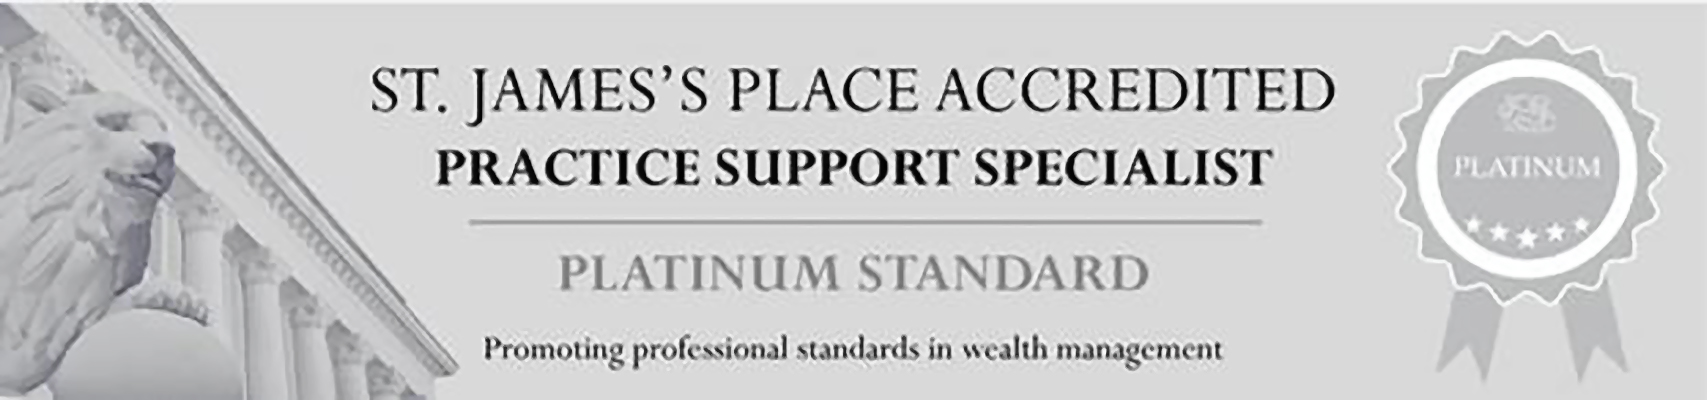 Platinum Accreditation - St. James's Place